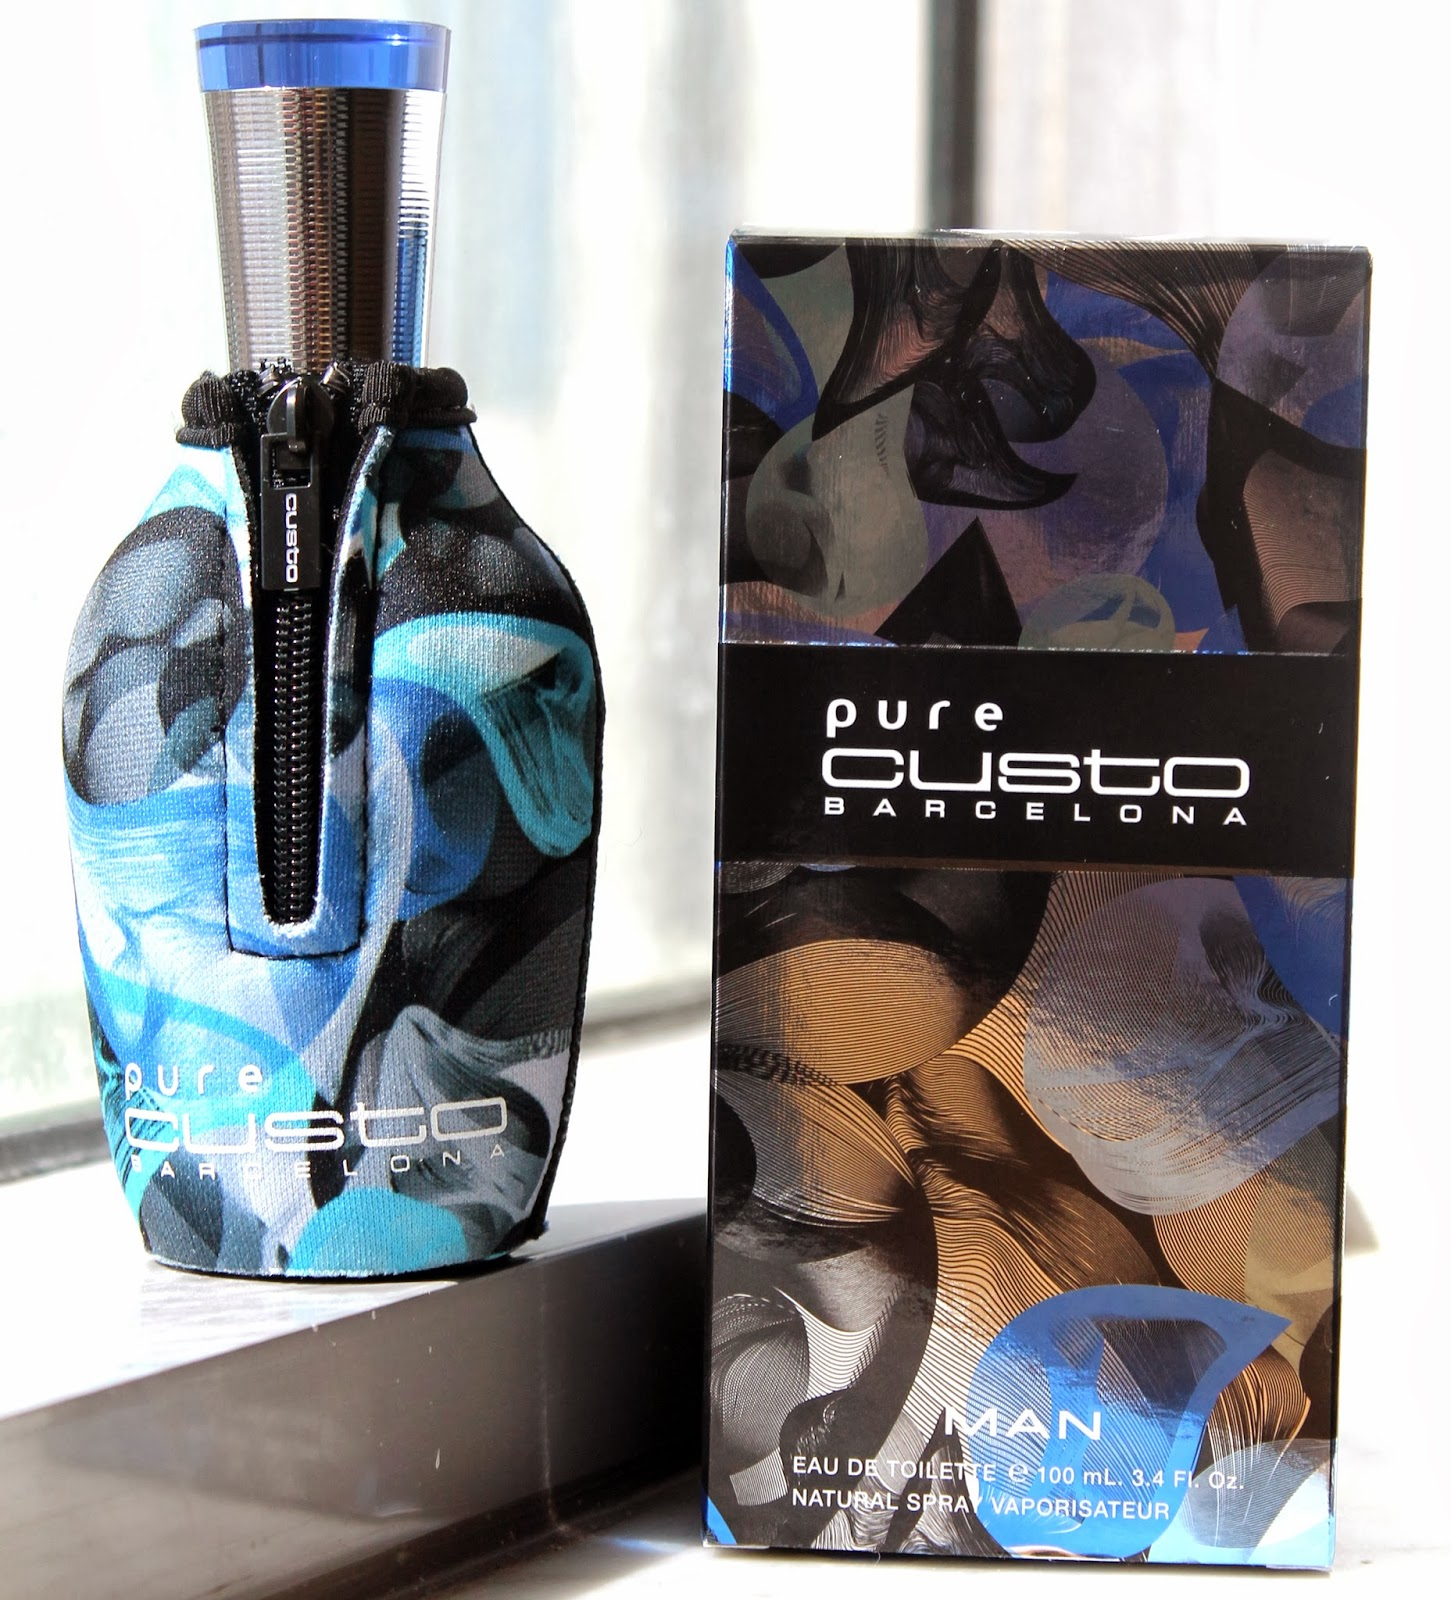 http://shop.custobarcelona.com/row/en/index.php/accessories-1/men/fragrance-men/pure-custo-men-50ml